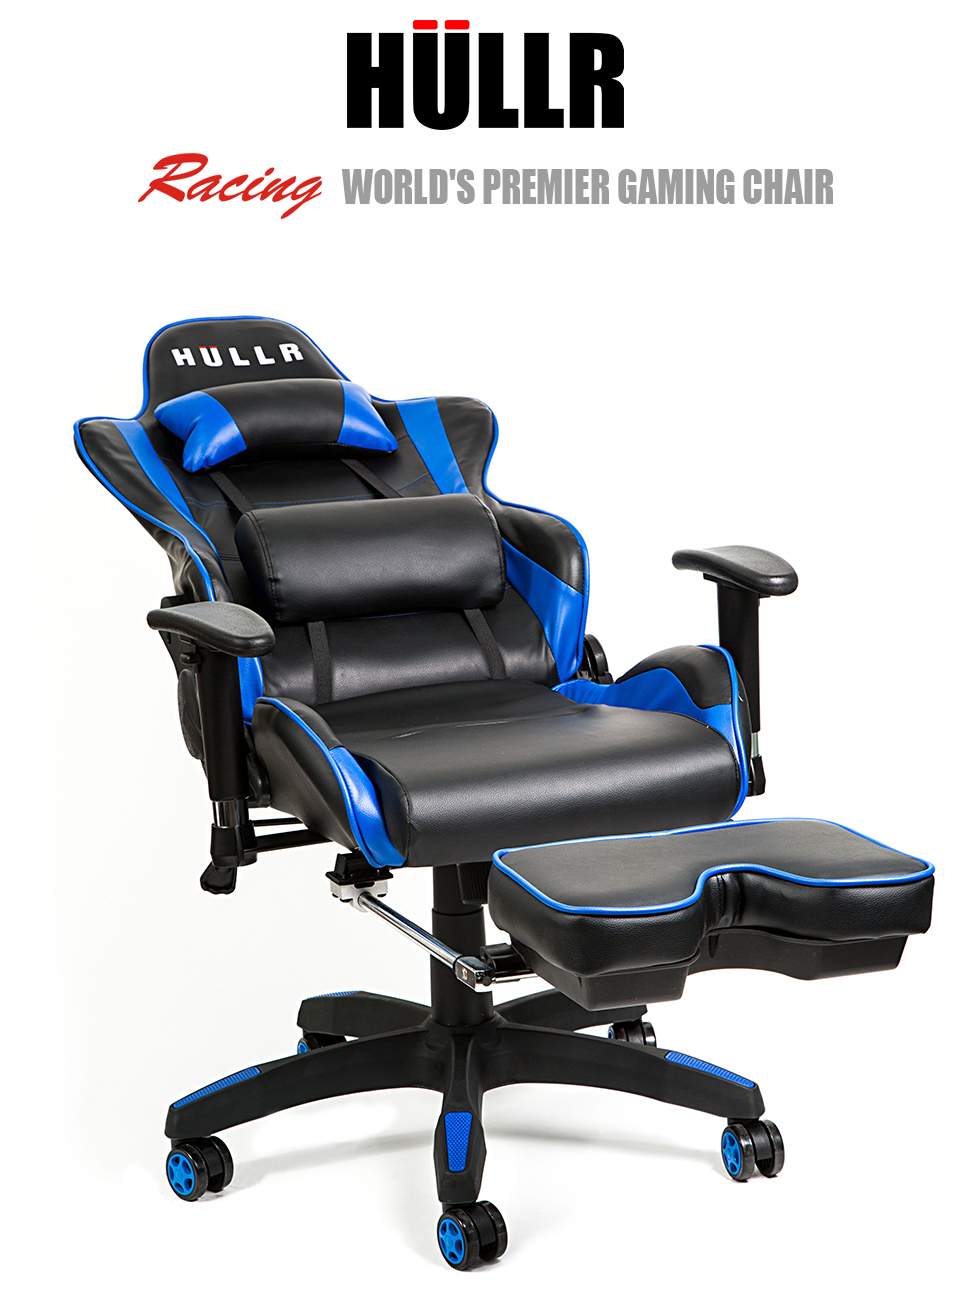 HULLR Gaming Racing Computer Office Chair With Foot Rest Executive High Back Ergonomic Reclining Design With Detachable Lumbar Backrest u0026 Headrest (PC PS4 ...  sc 1 st  Amazon.com & Amazon.com: HULLR Gaming Racing Computer Office Chair With Foot ... islam-shia.org